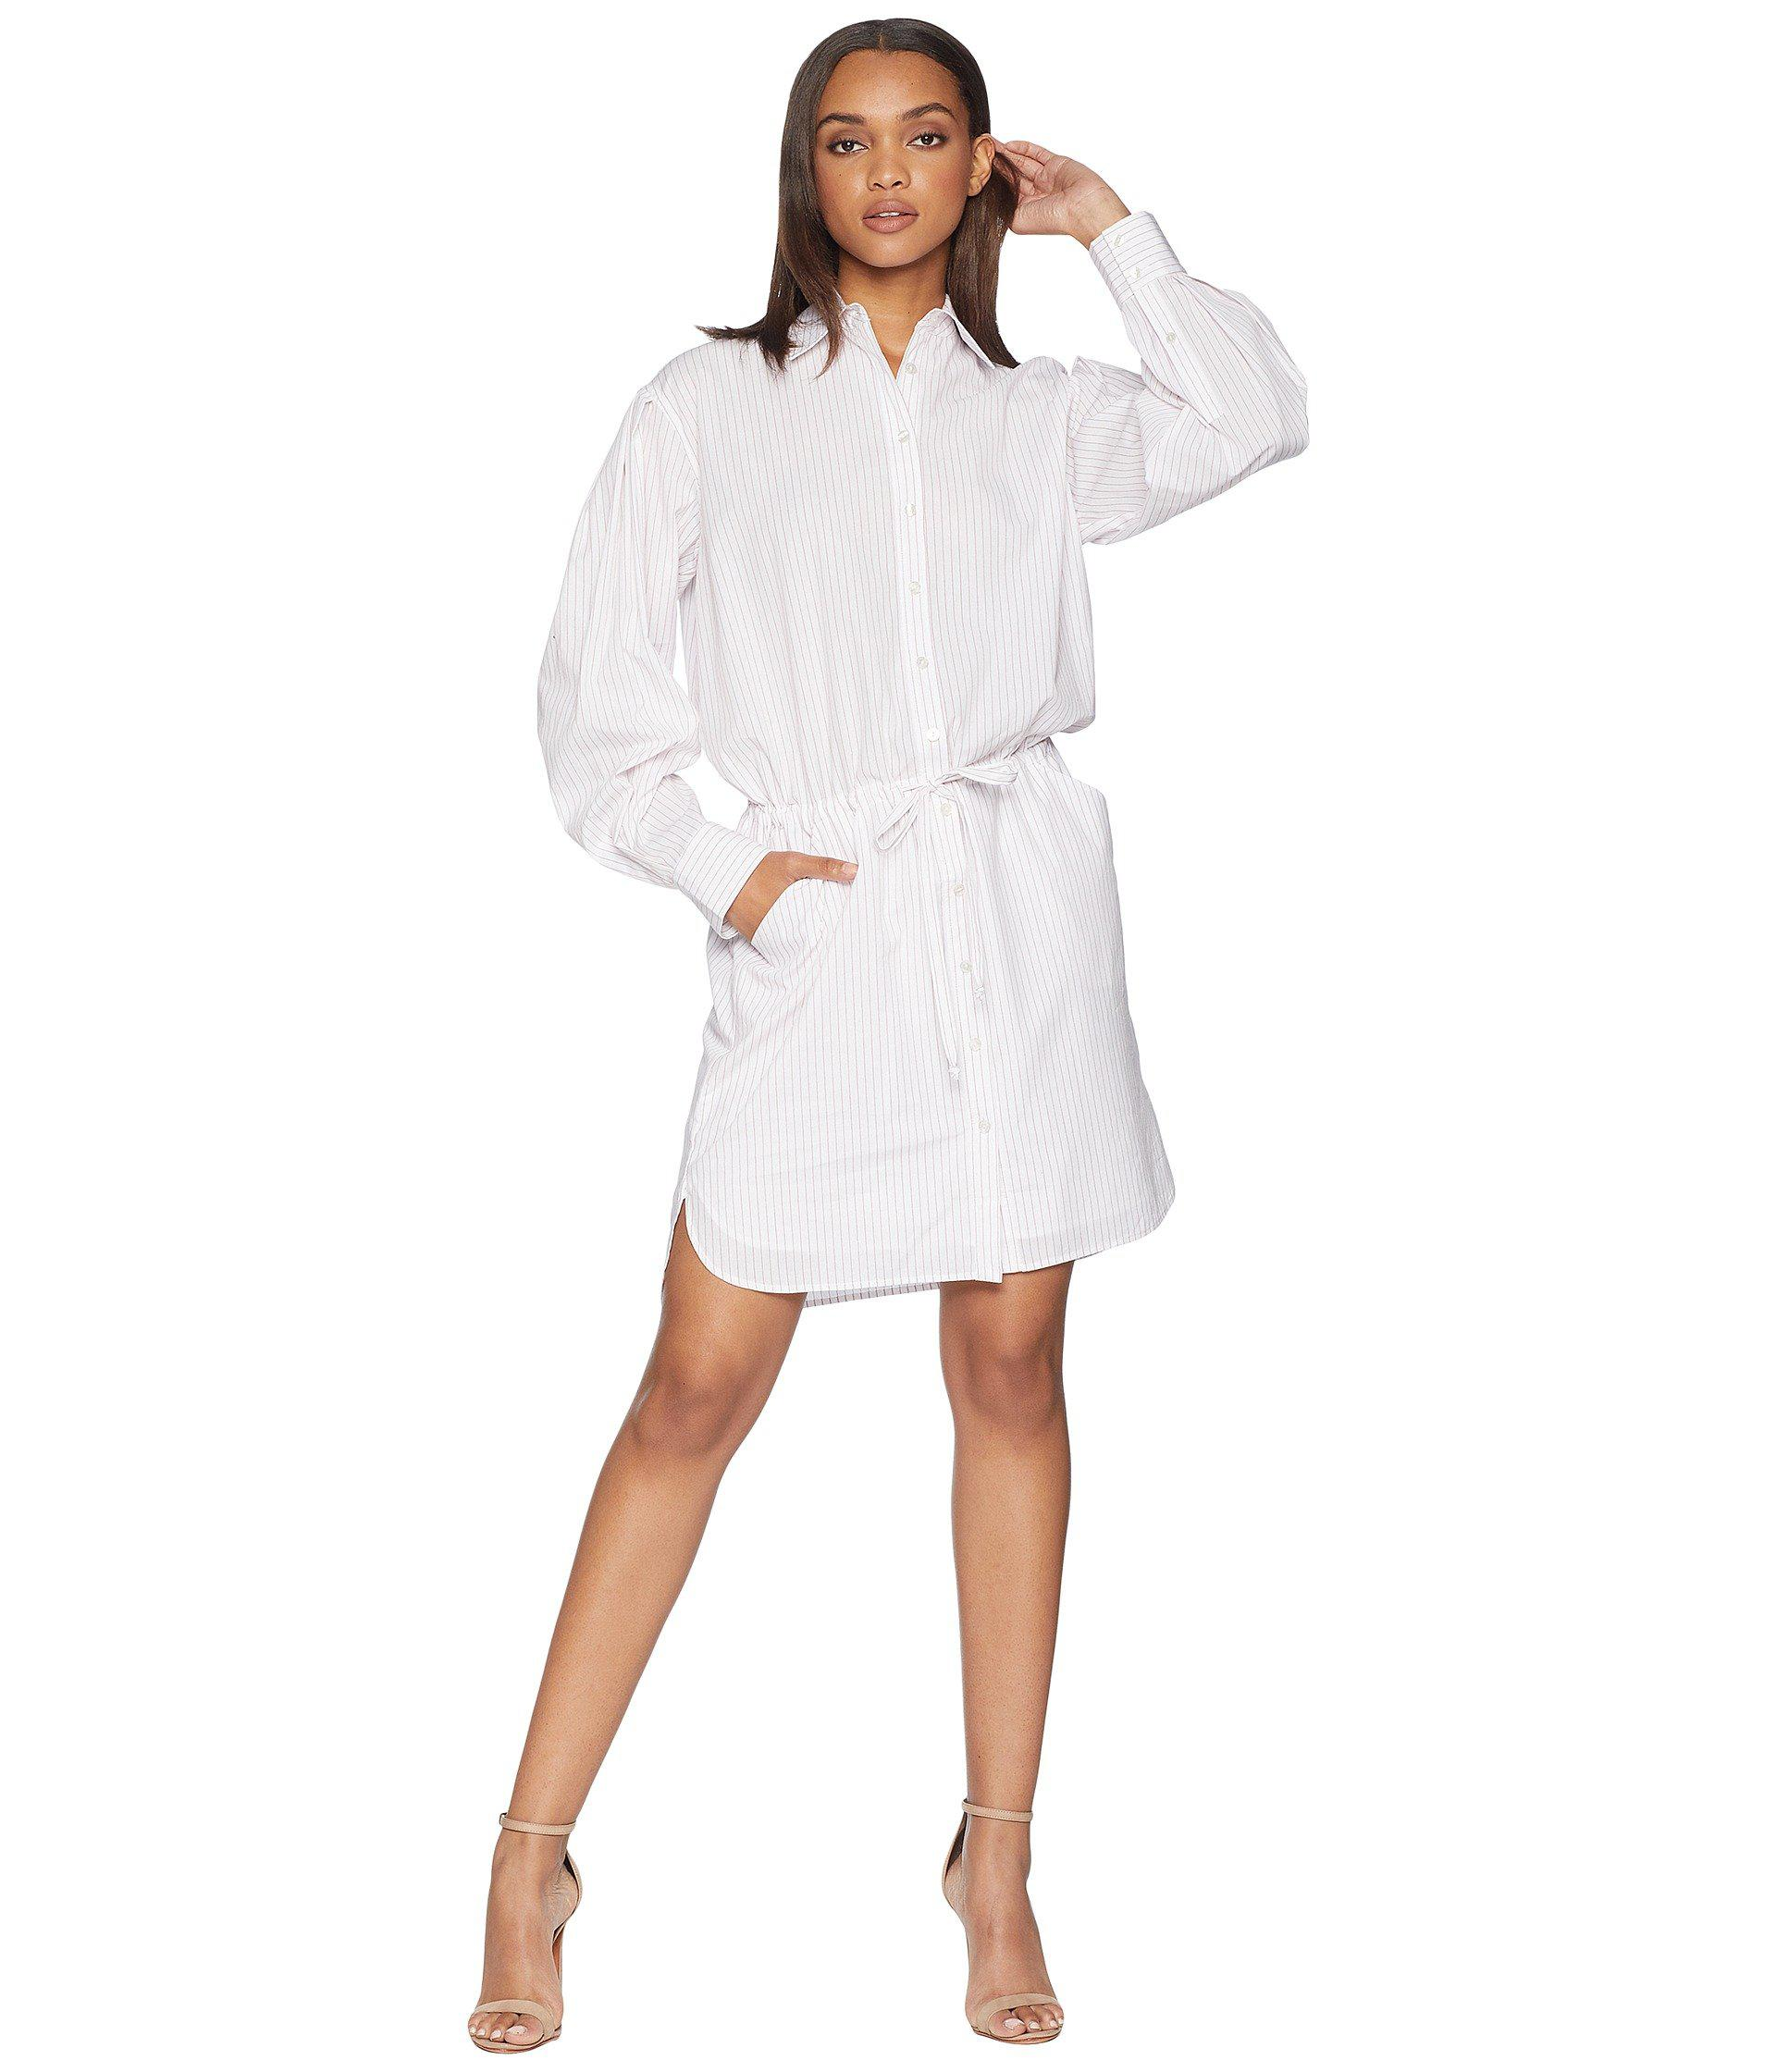 Lyst - Juicy Couture Striped Cotton Shirt Dress in White 83e166176